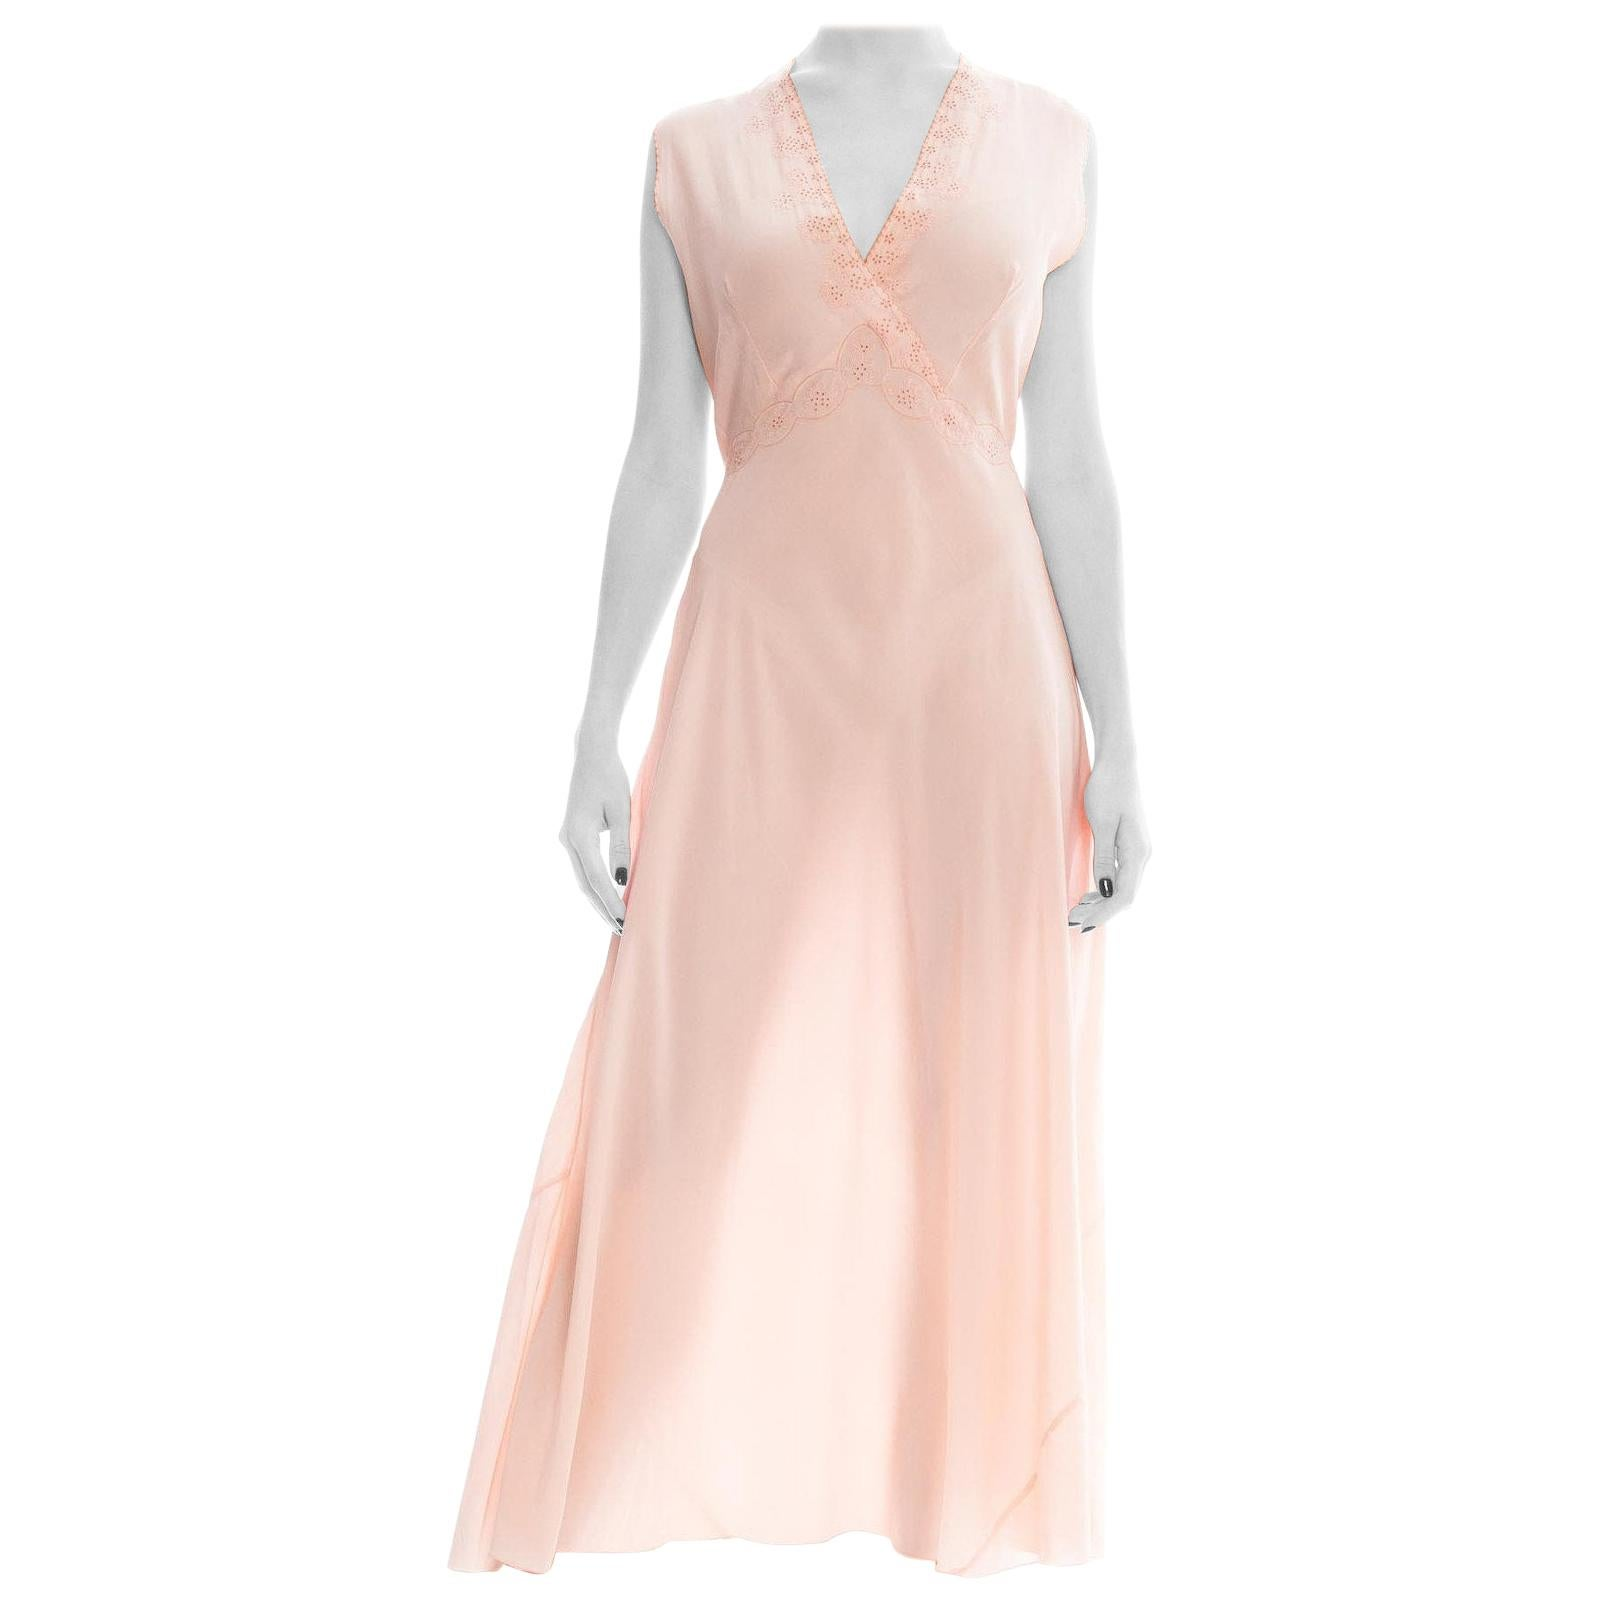 1930S Blush Pink Silk Crepe De Chine French Couture Nightgown  DressNegligee W